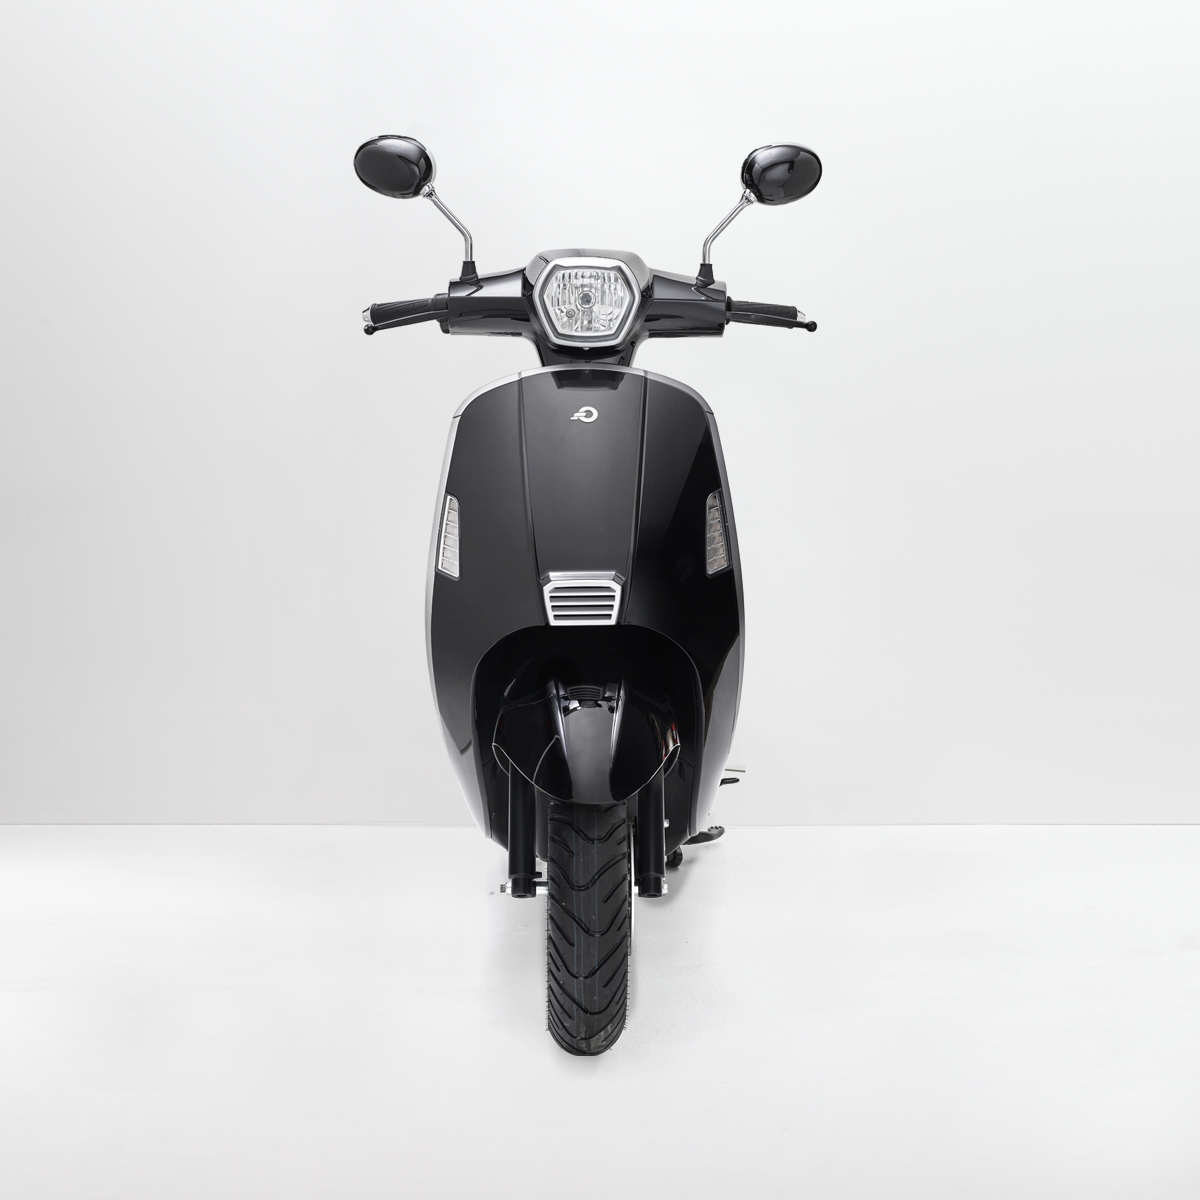 tilscoot-r-new-euroscoot-vue-face